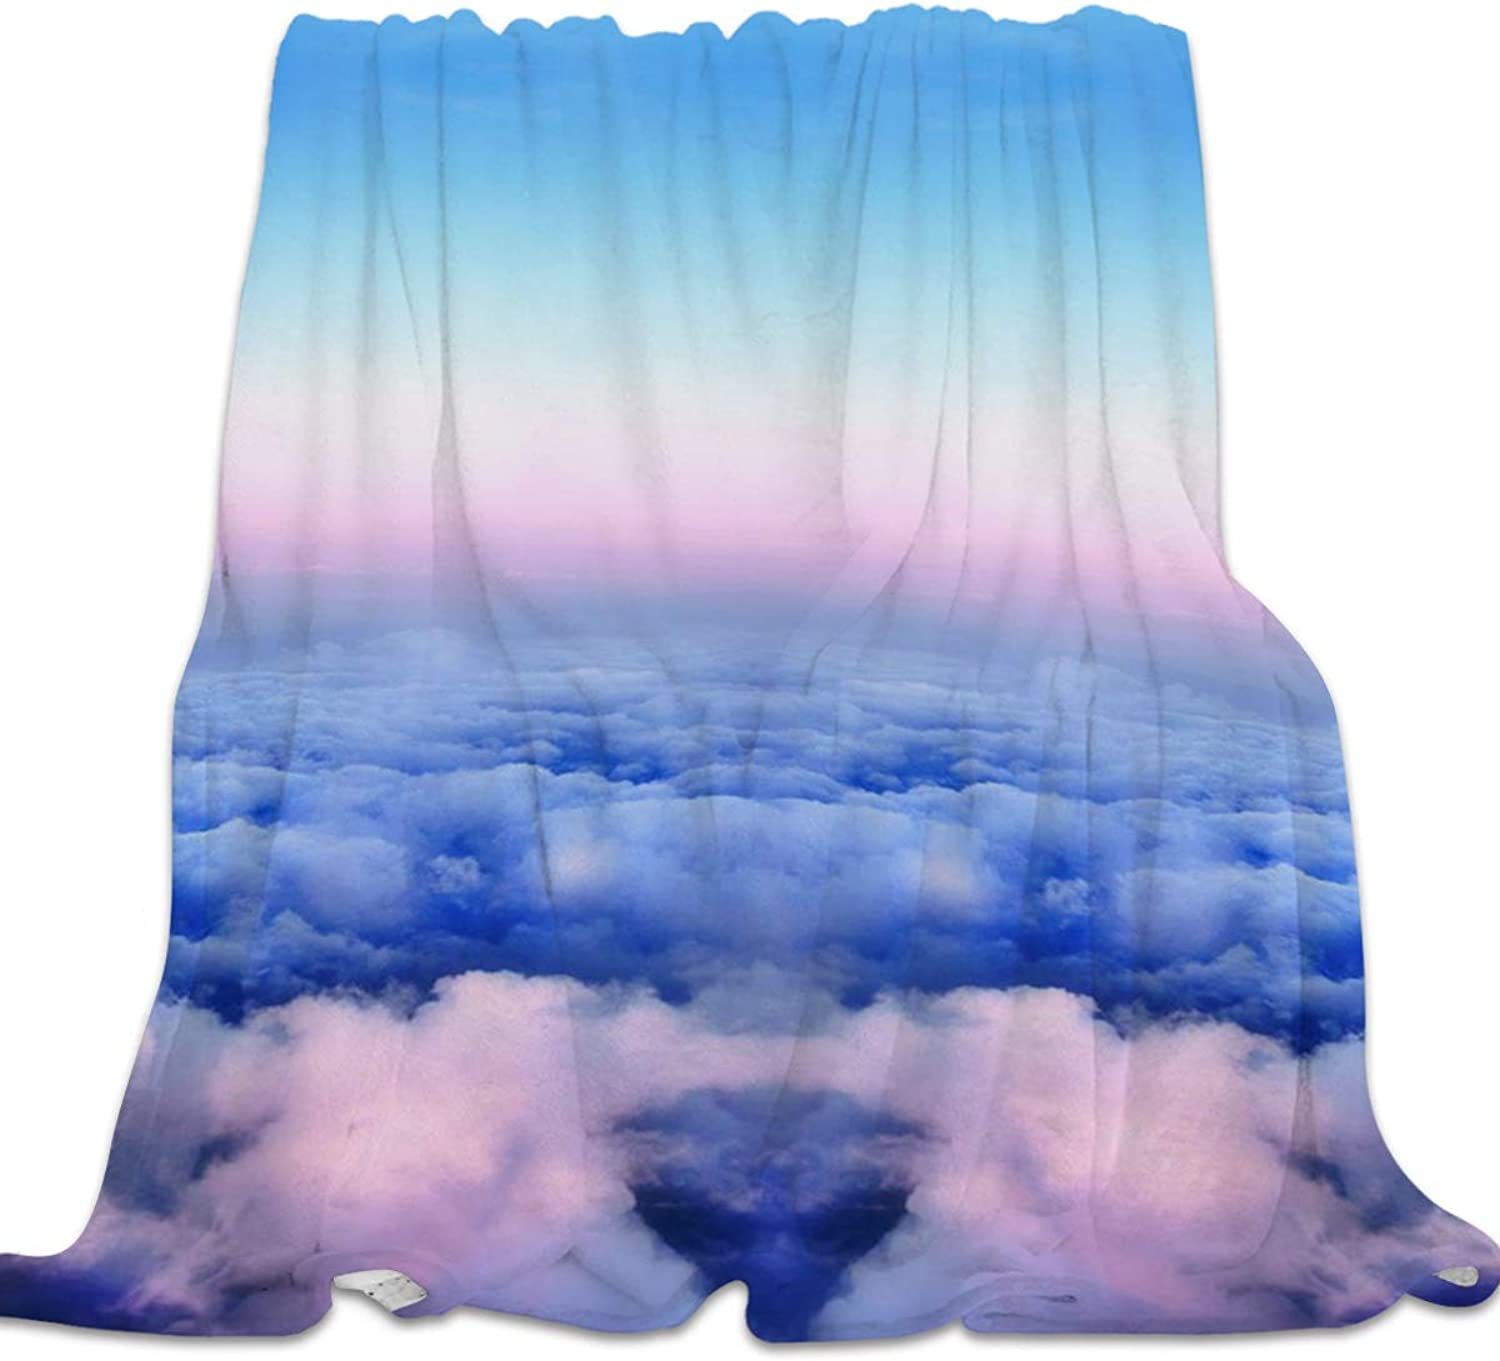 YEHO Art Gallery 39x49 Inch Flannel Fleece Bed Blanket Soft Throw-Blankets for Kids Adult,Beautiful Landscape of Cloud,Lightweight Blankets for Bedroom Living Room Sofa Couch Home Decor